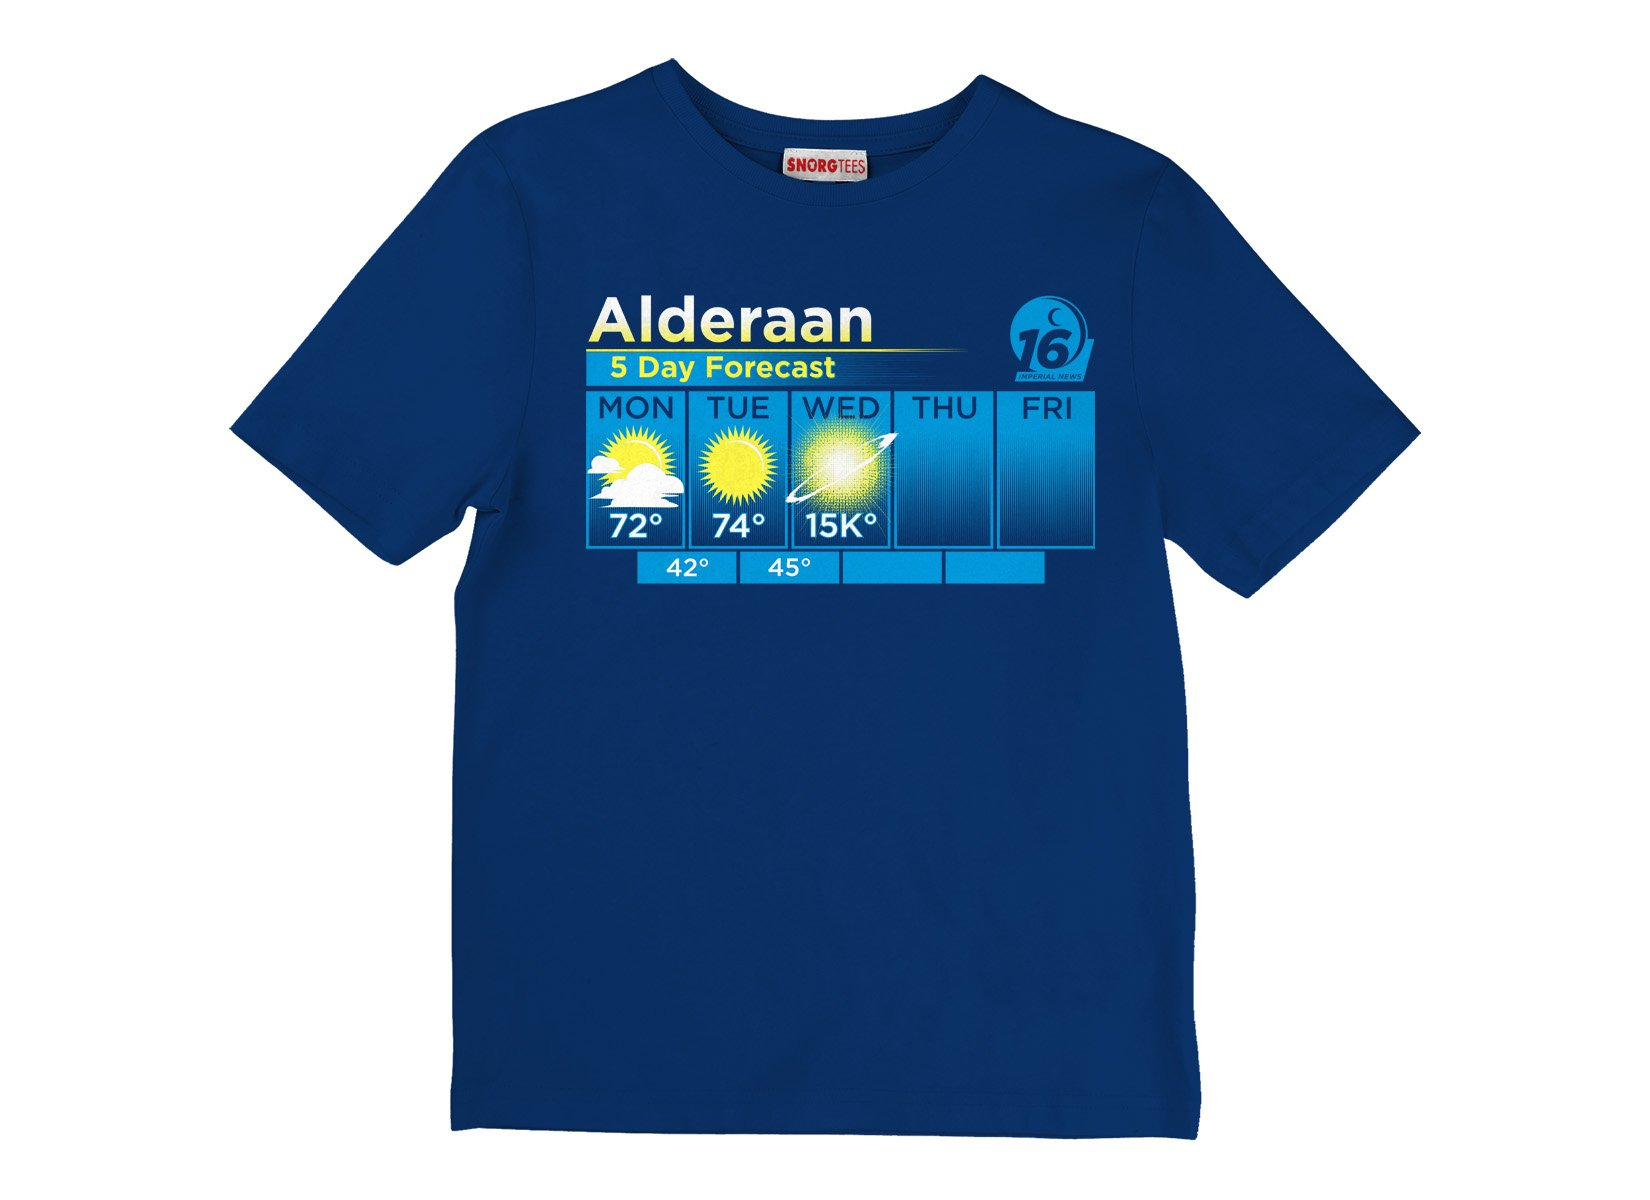 Alderaan 5 Day Forecast on Kids T-Shirt